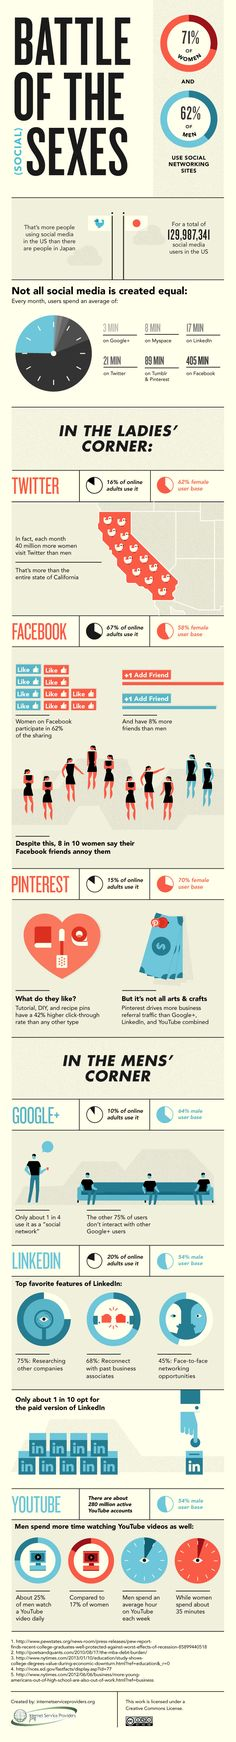 Men Are From Google+ And LinkedIn, Women Are From Twitter And Pinterest [INFOGRAPHIC]